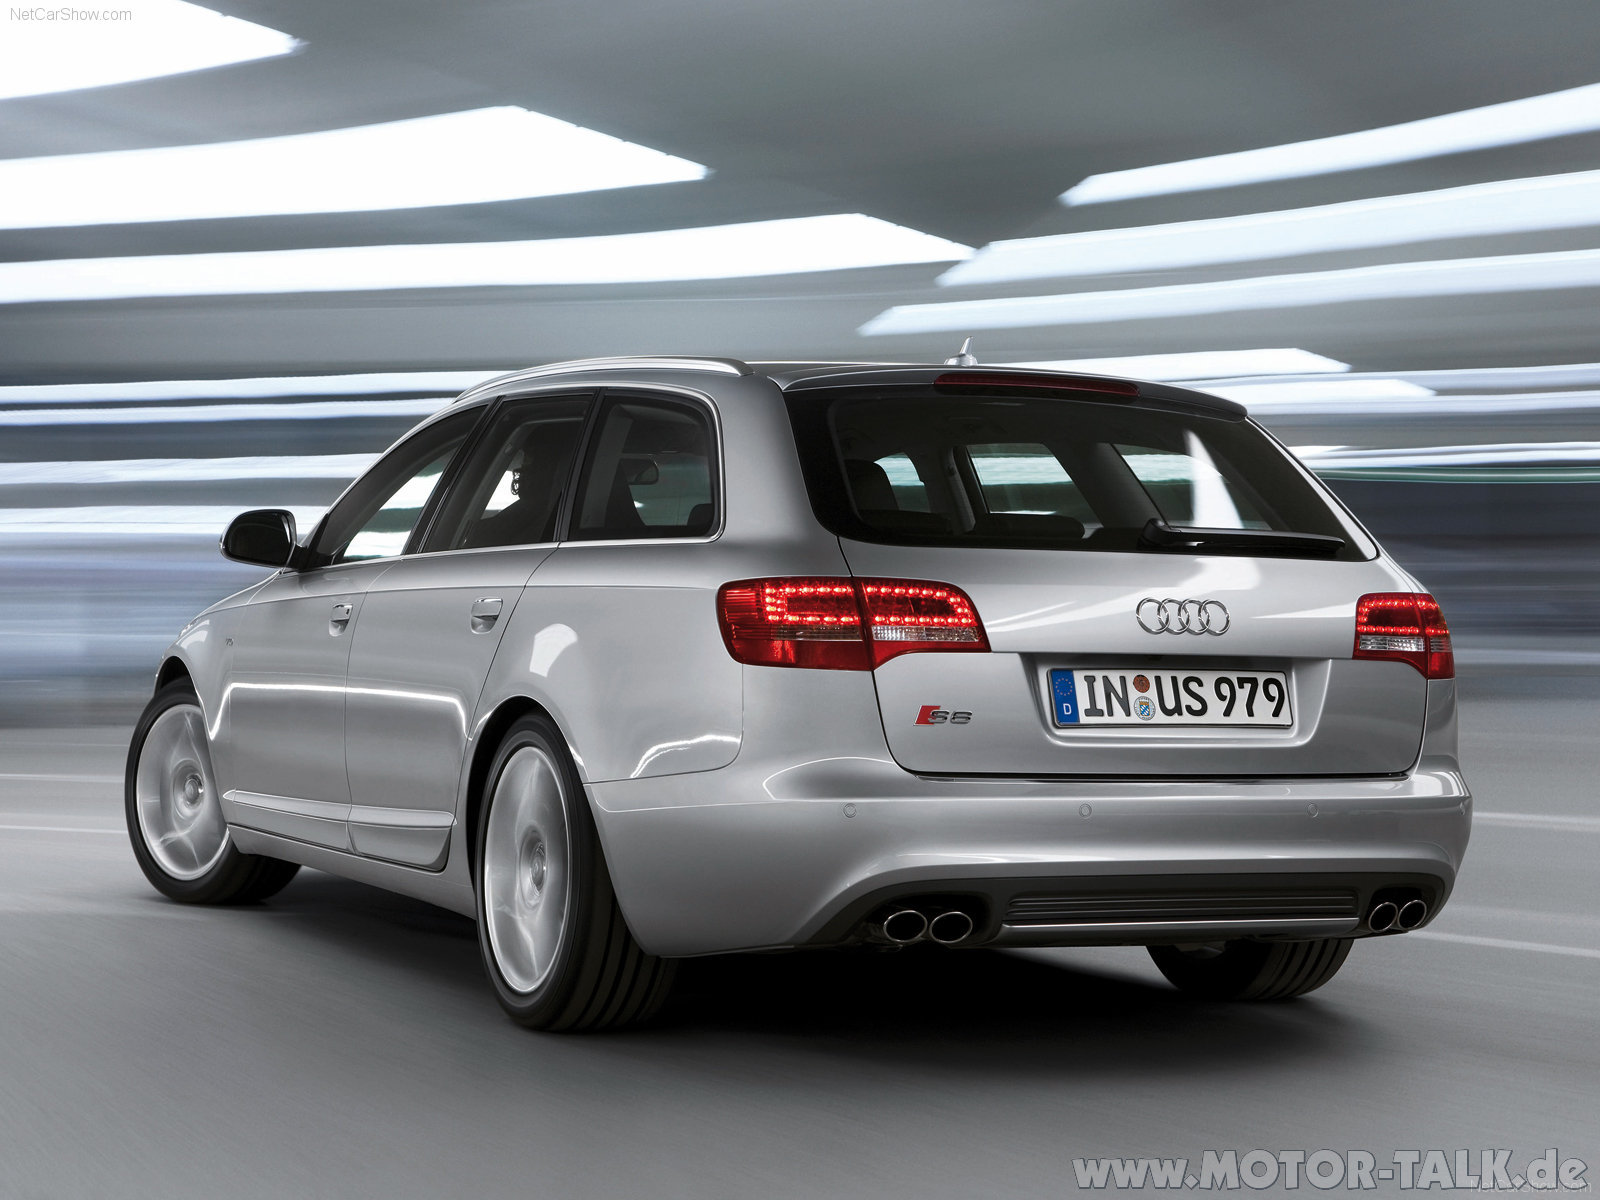 audi a6 s6 avant photos and comments. Black Bedroom Furniture Sets. Home Design Ideas